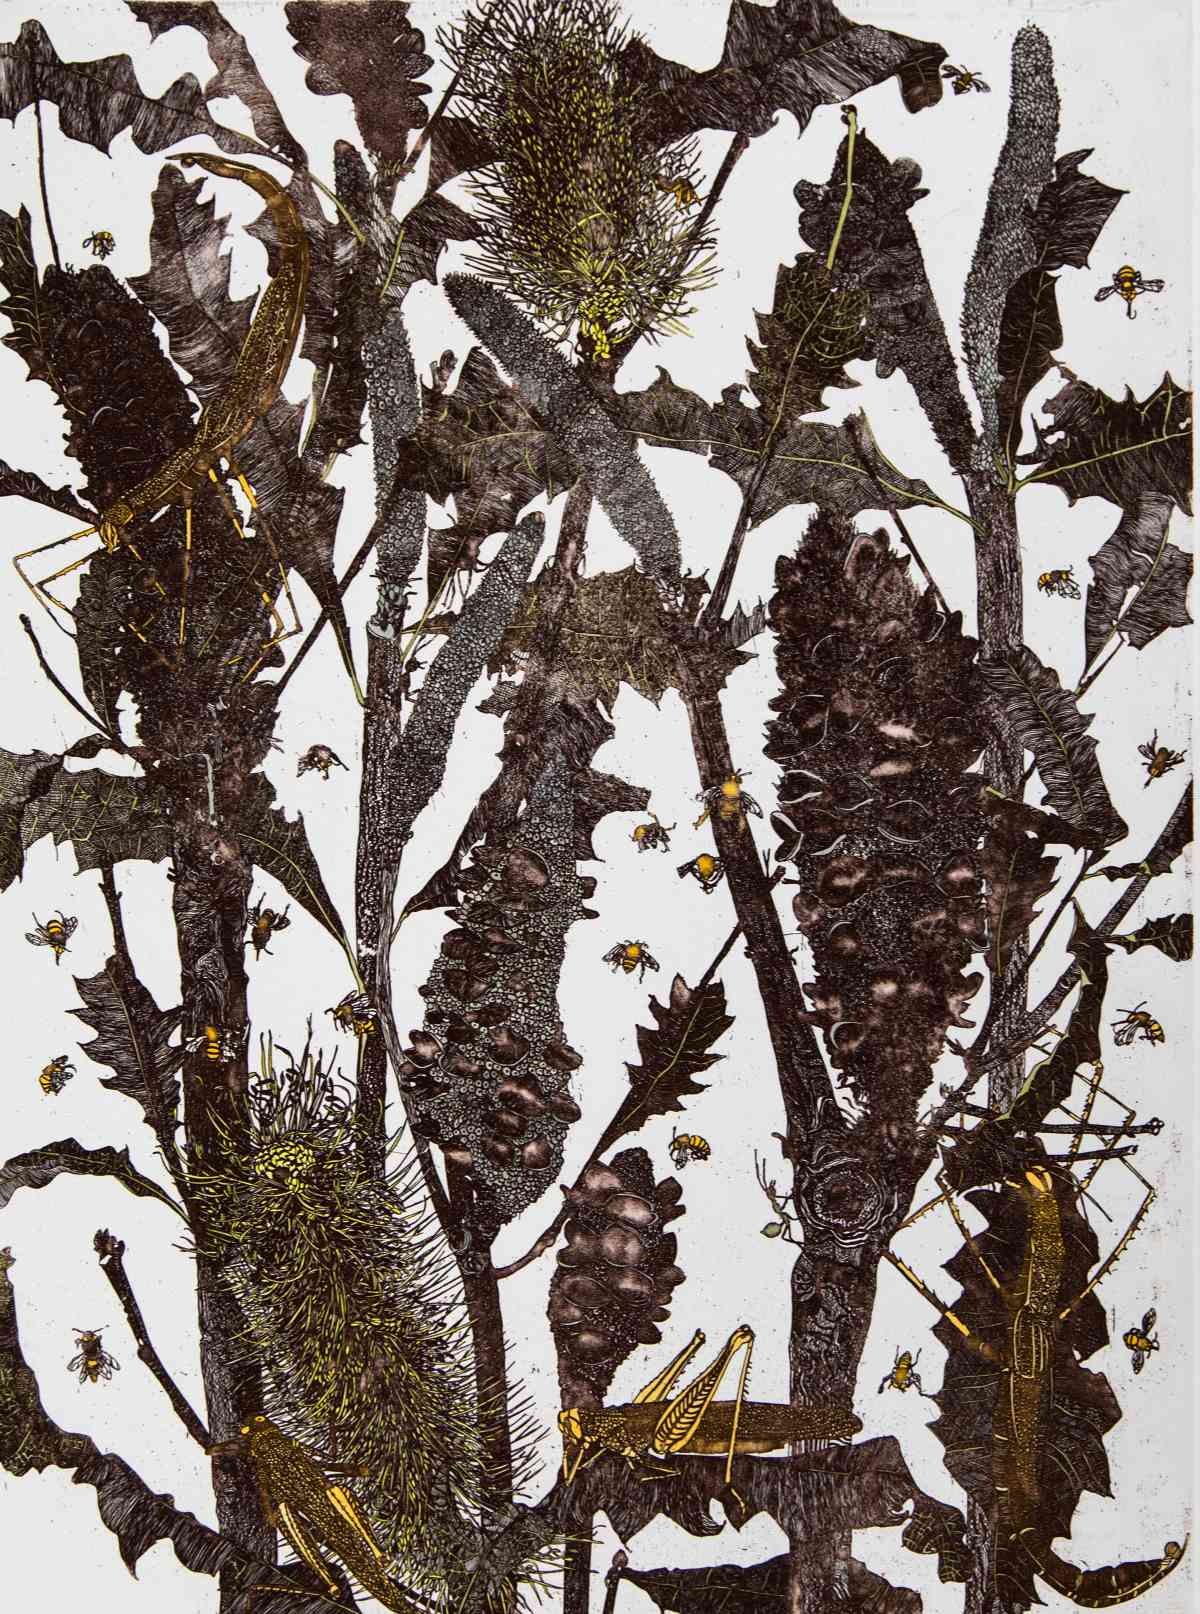 Tropical Banksia with Insects_etching, edition of 40_60 x 45cm